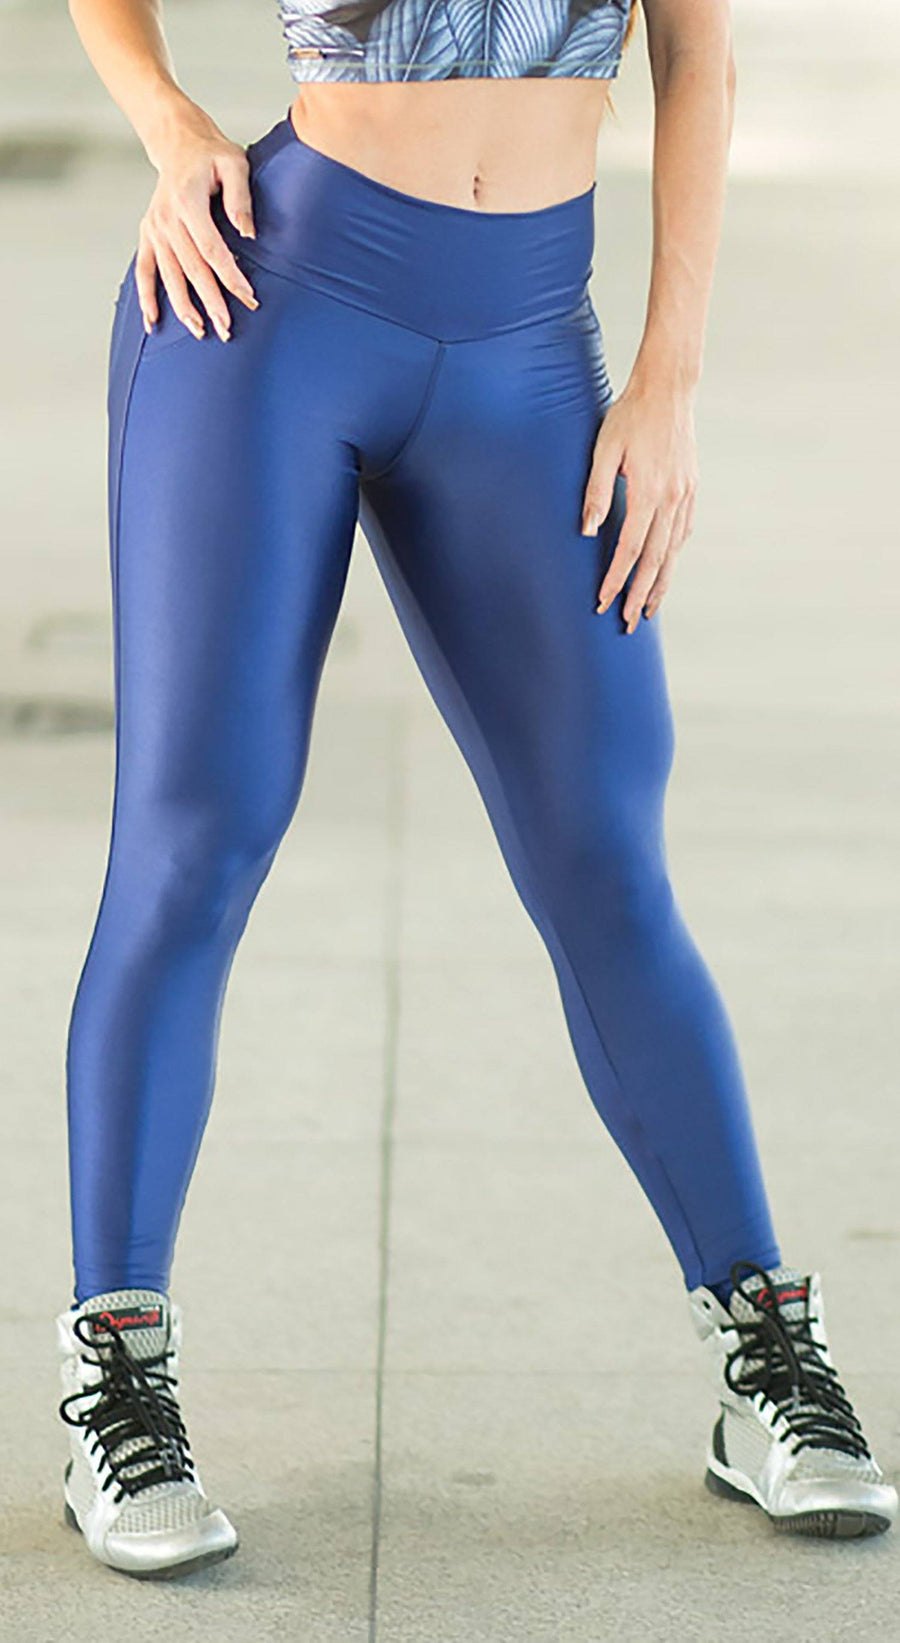 Brazilian Workout Legging - Push Up Blue Moon